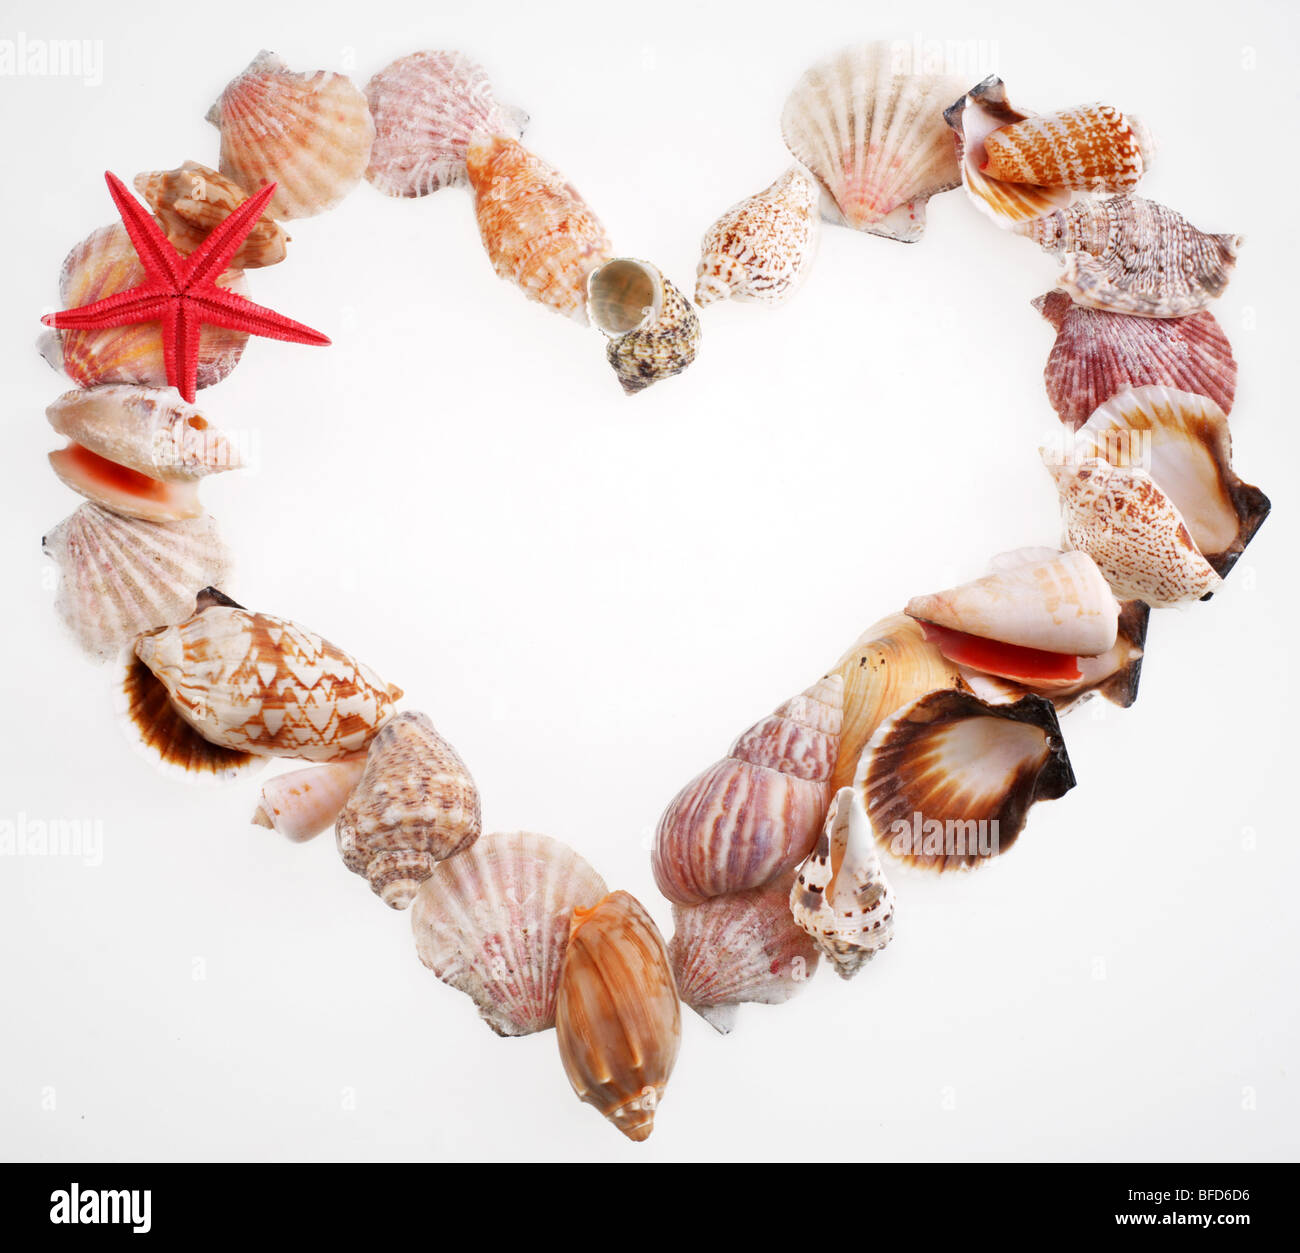 Shells in a shape of valentine's heart on a white - Stock Image